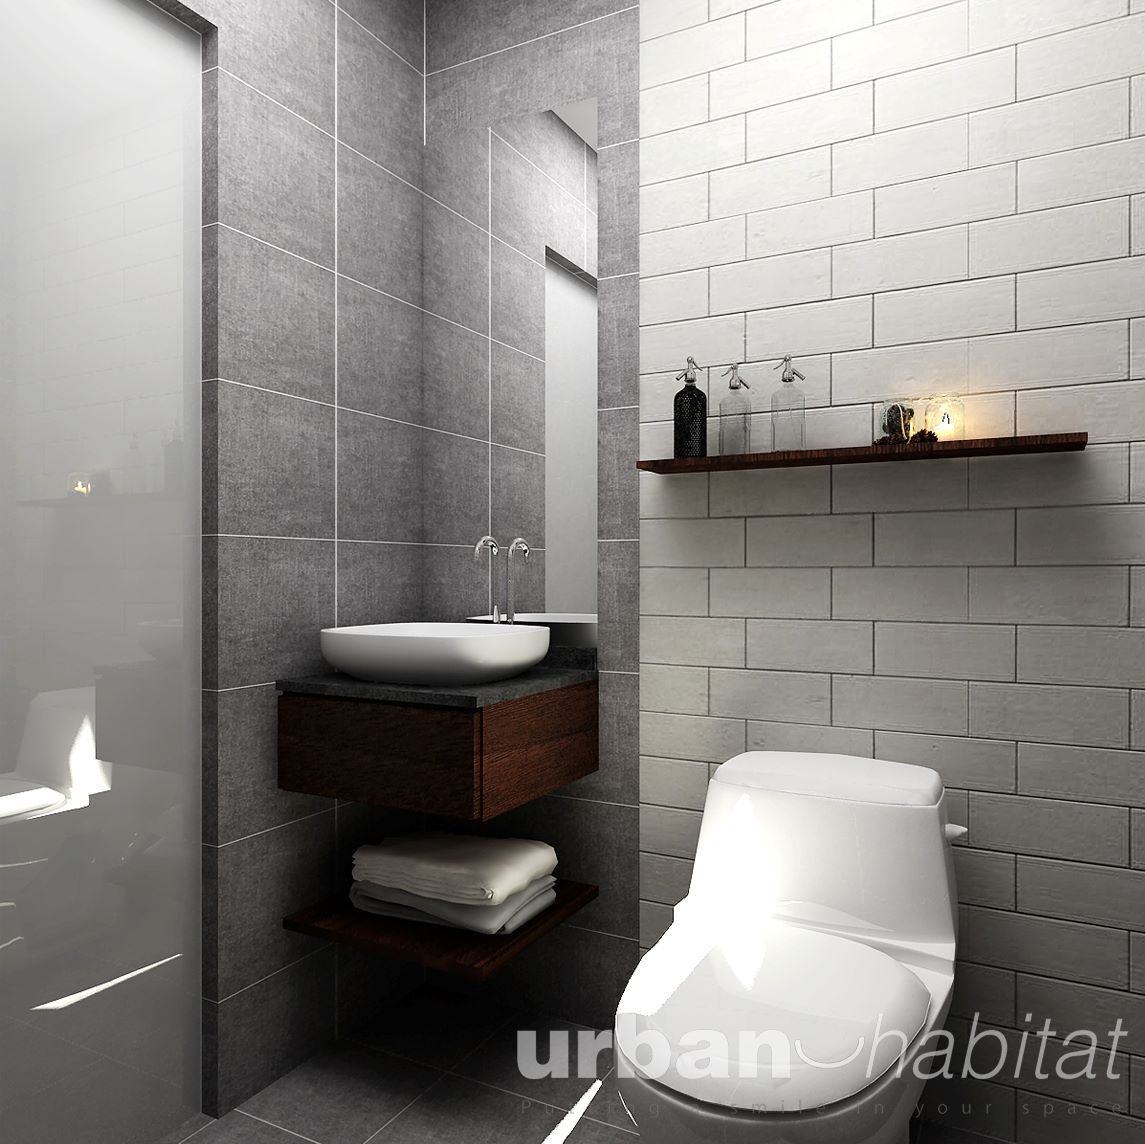 Home Design Ideas For Hdb Flats: Urban Habitat HDB 3-Room Resale Eclectic Serangoon North 6